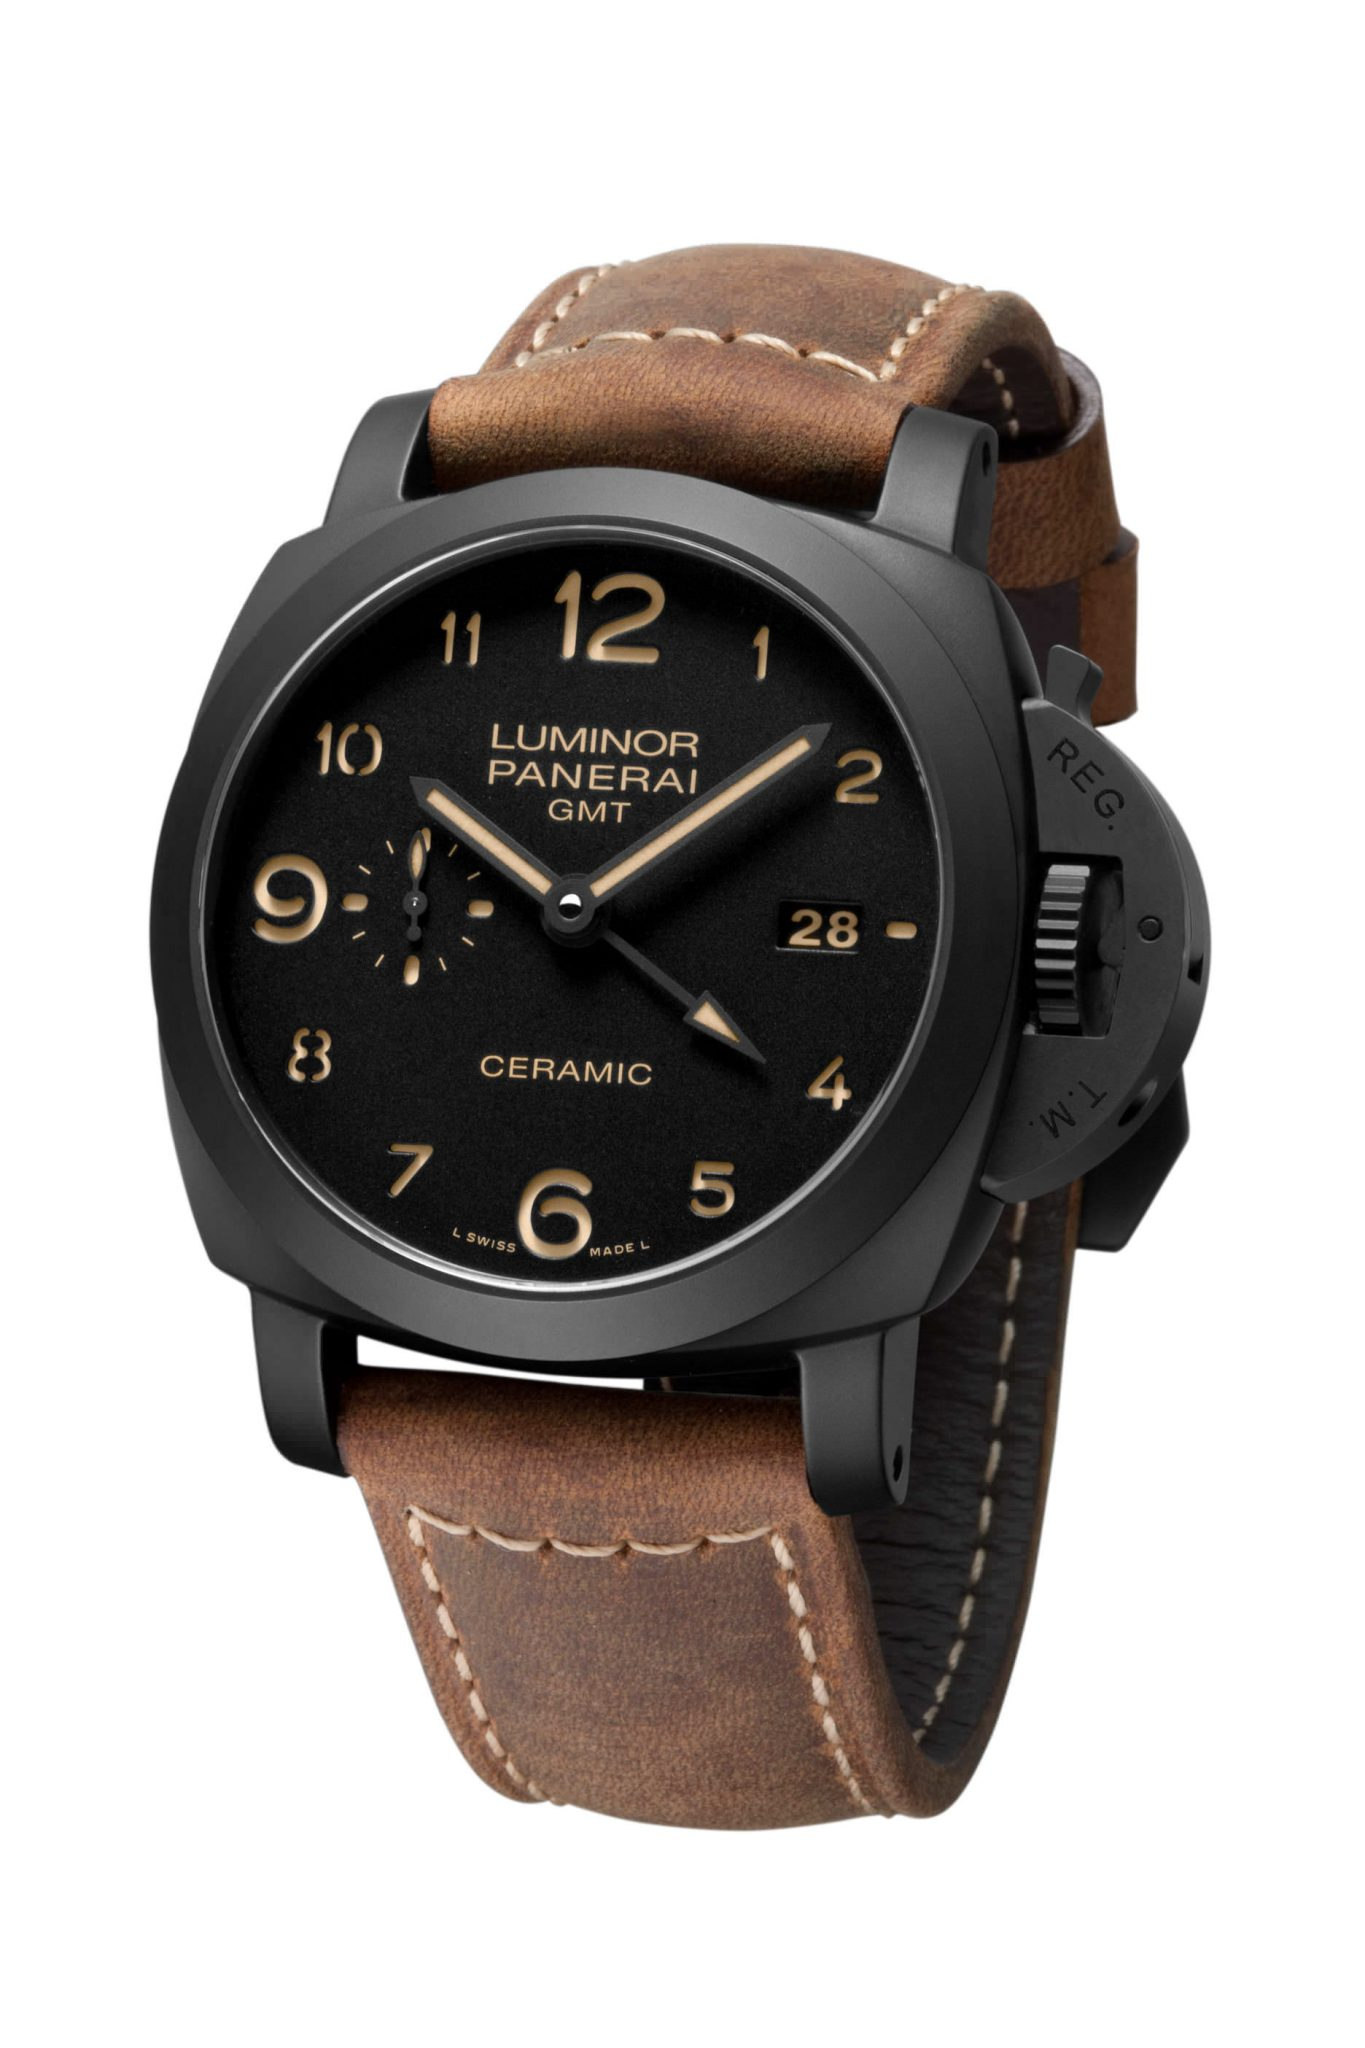 Panerai Luminor 1950 Ceramica